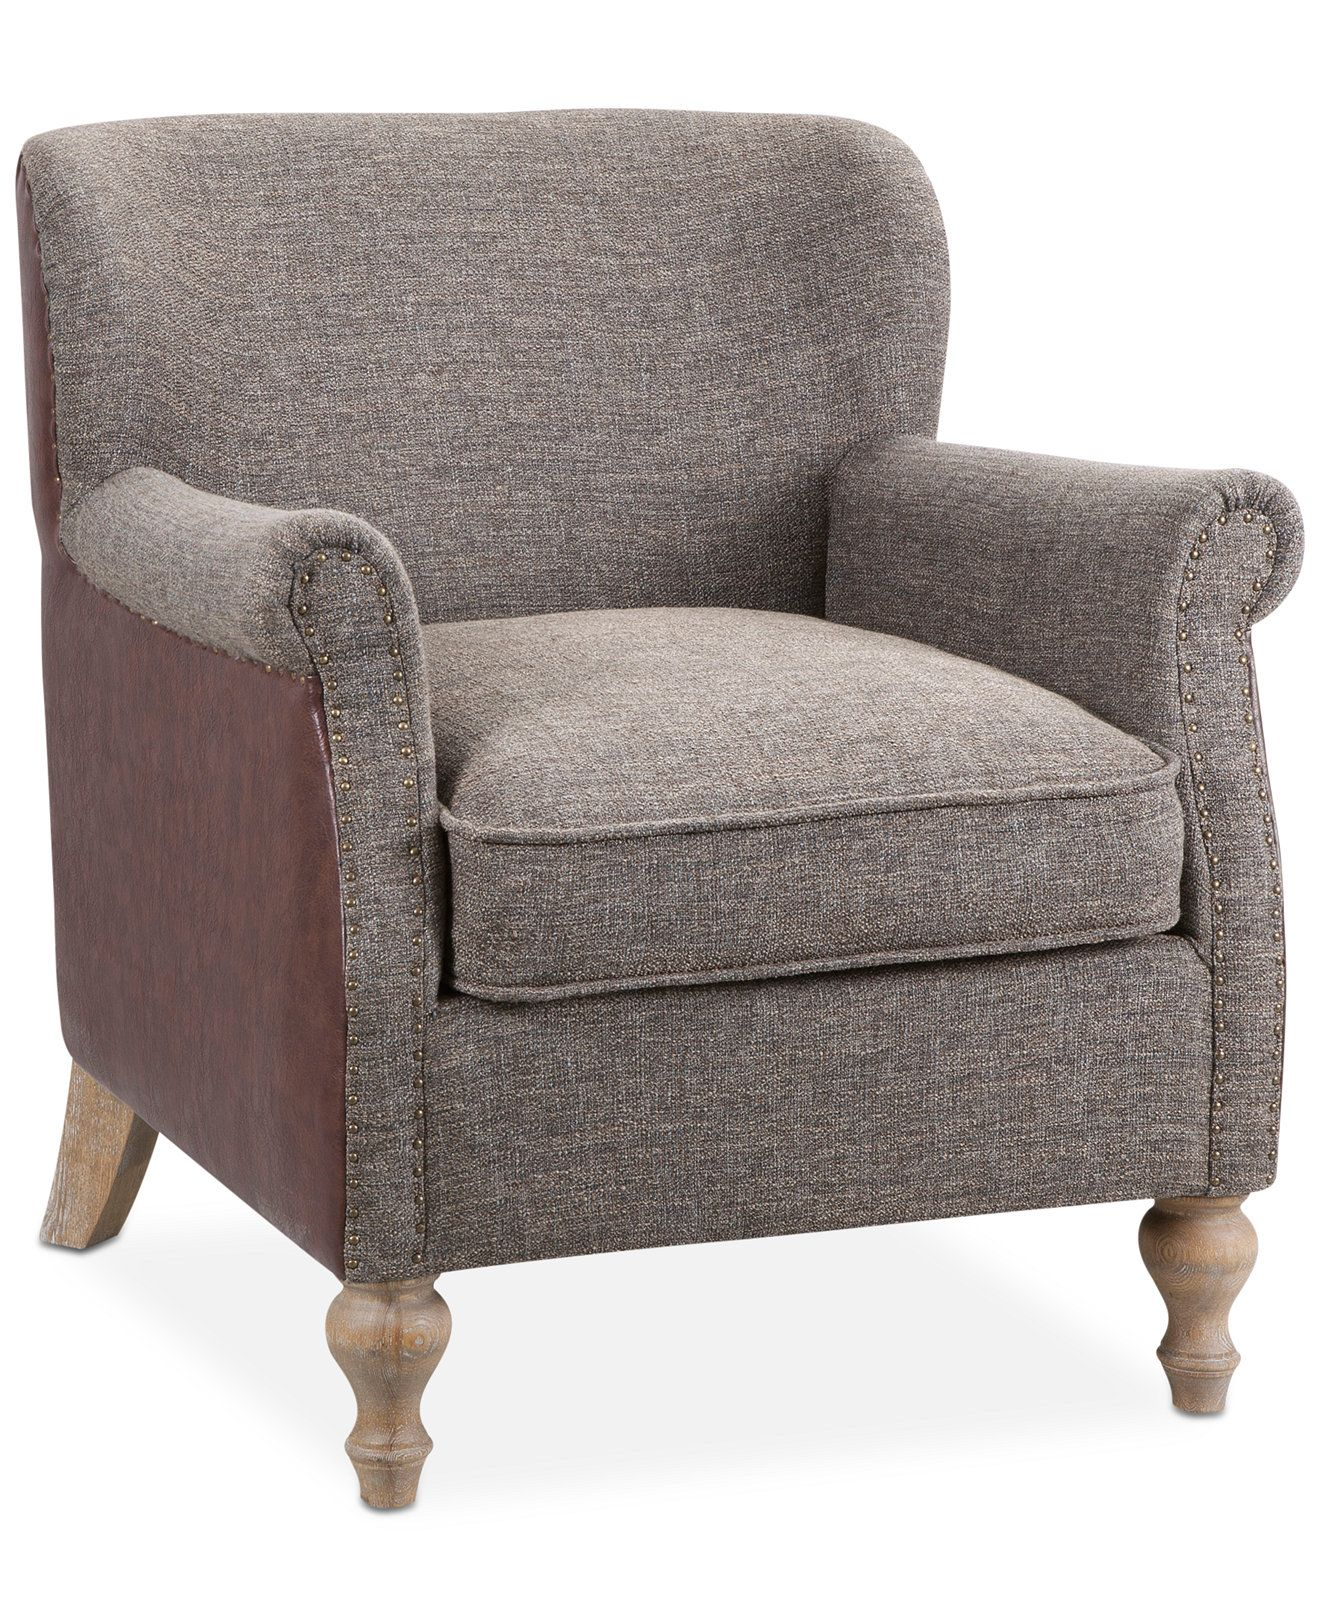 leather accent chairs for living room modern rugs chelsie fabric faux chair direct ship recliners furniture macy s